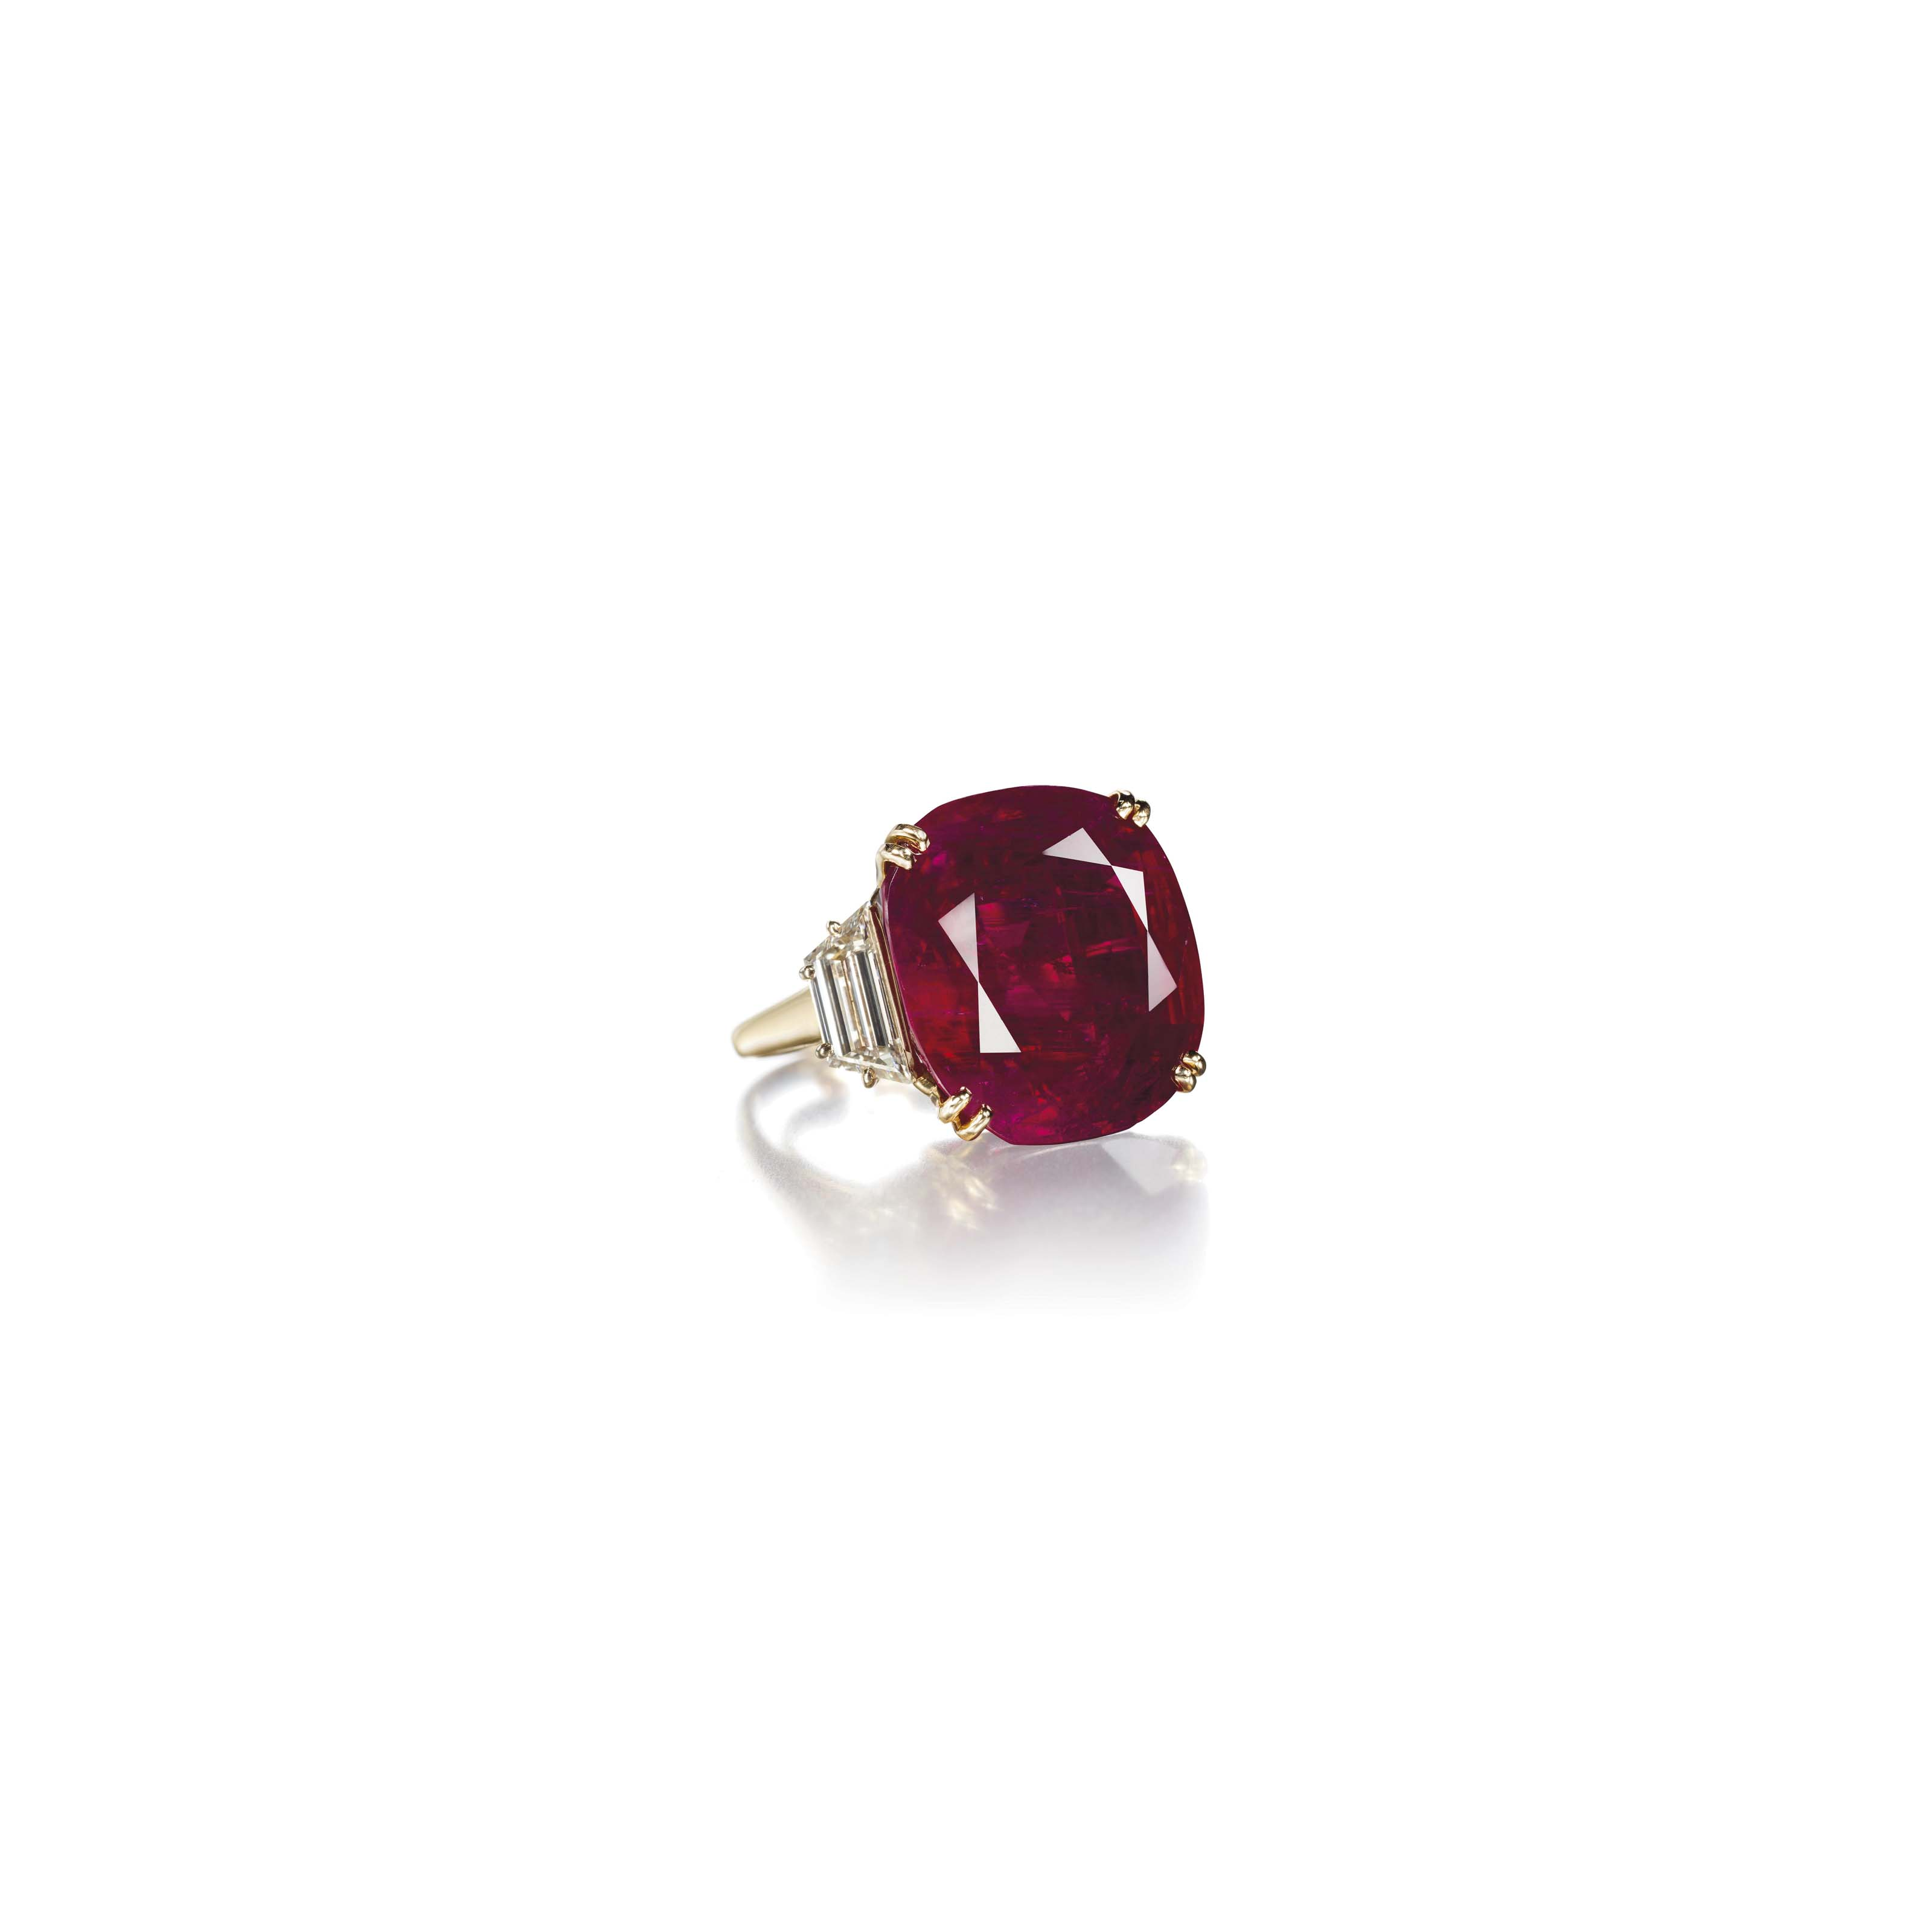 A RUBY AND DIAMOND RING, BY CHAUMET